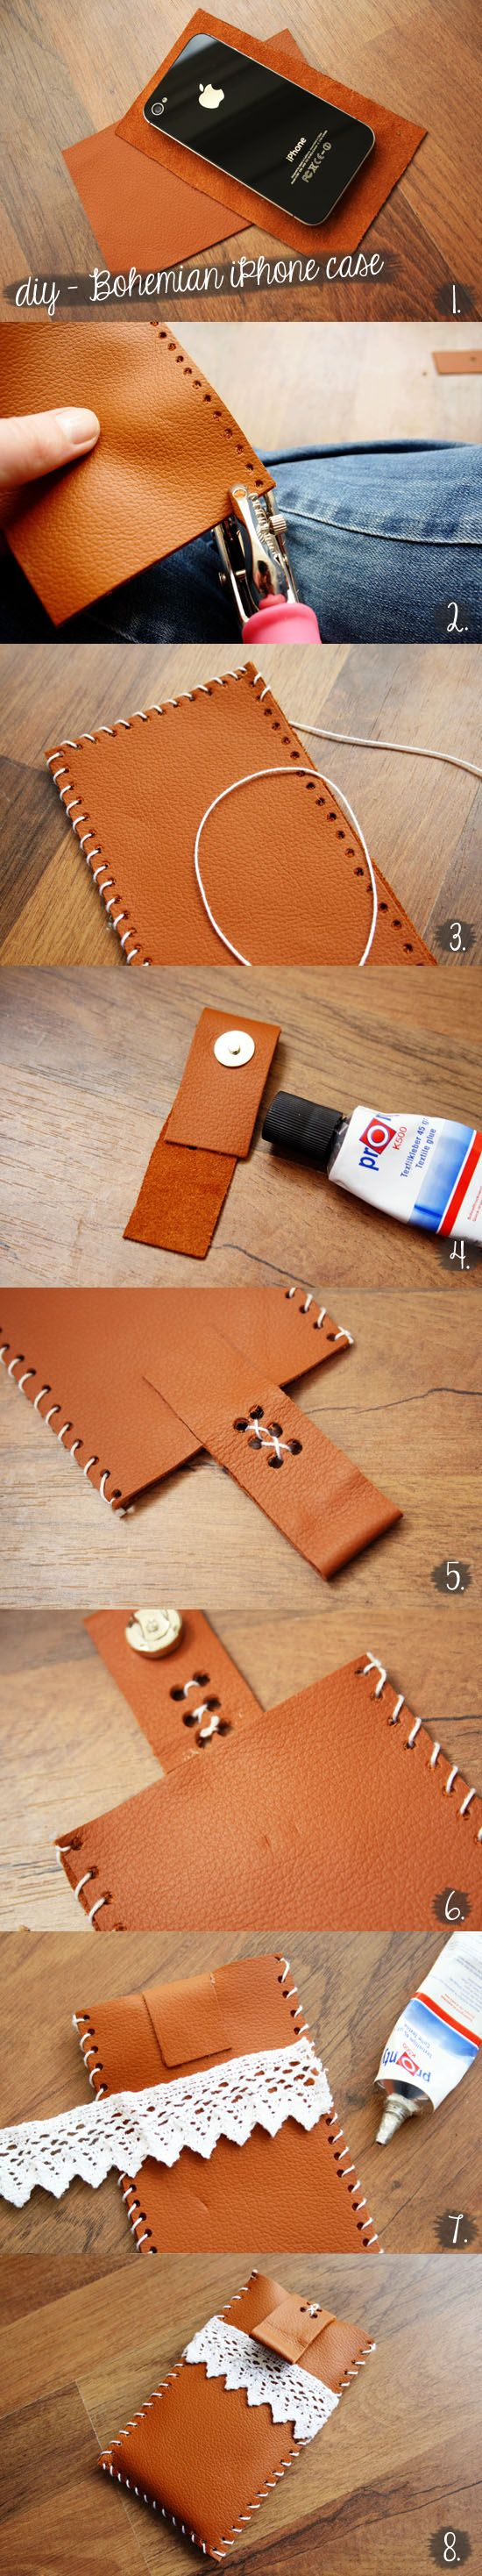 DIY Sewing Gift Ideas for Adults and Kids, Teens, Women, Men and Baby - DIY Bohemian Style iPhone Case - Cute and Easy DIY Sewing Projects Make Awesome Presents for Mom, Dad, Husband, Boyfriend, Children